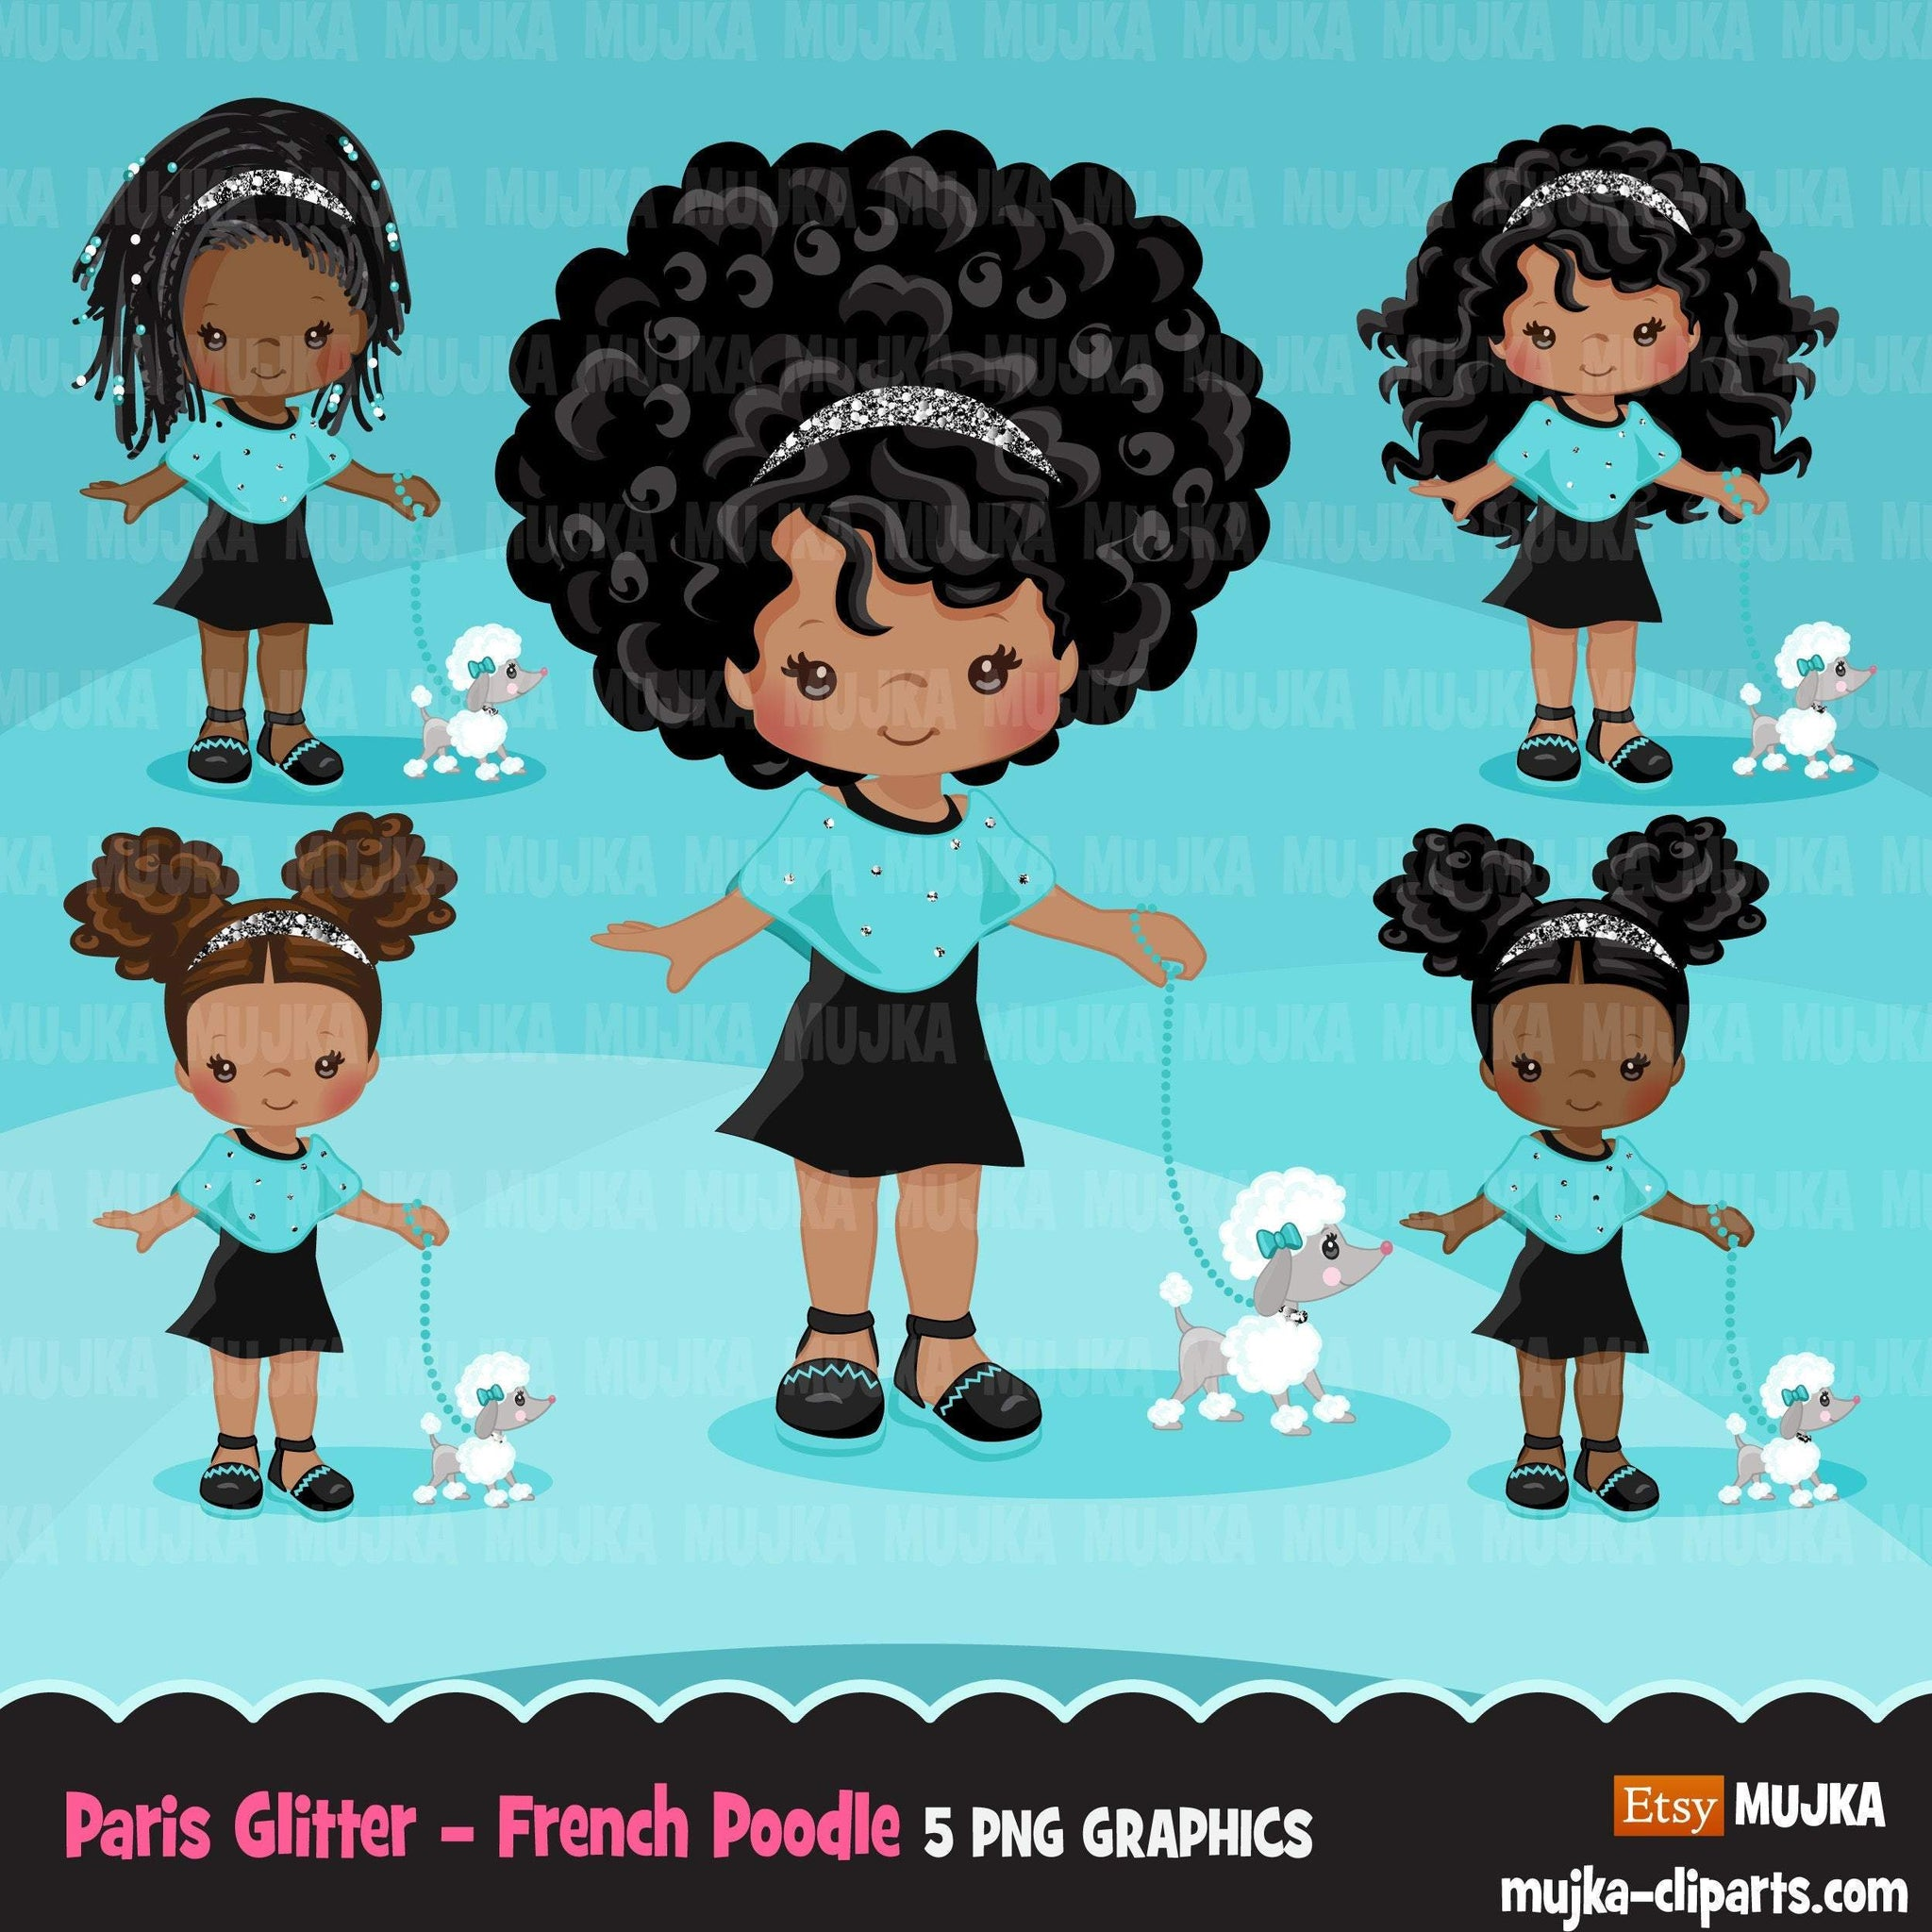 Paris clipart, Glitter teal Paris Black Girls, fashion, french poodle, baby shower, birthday graphics Png clip art